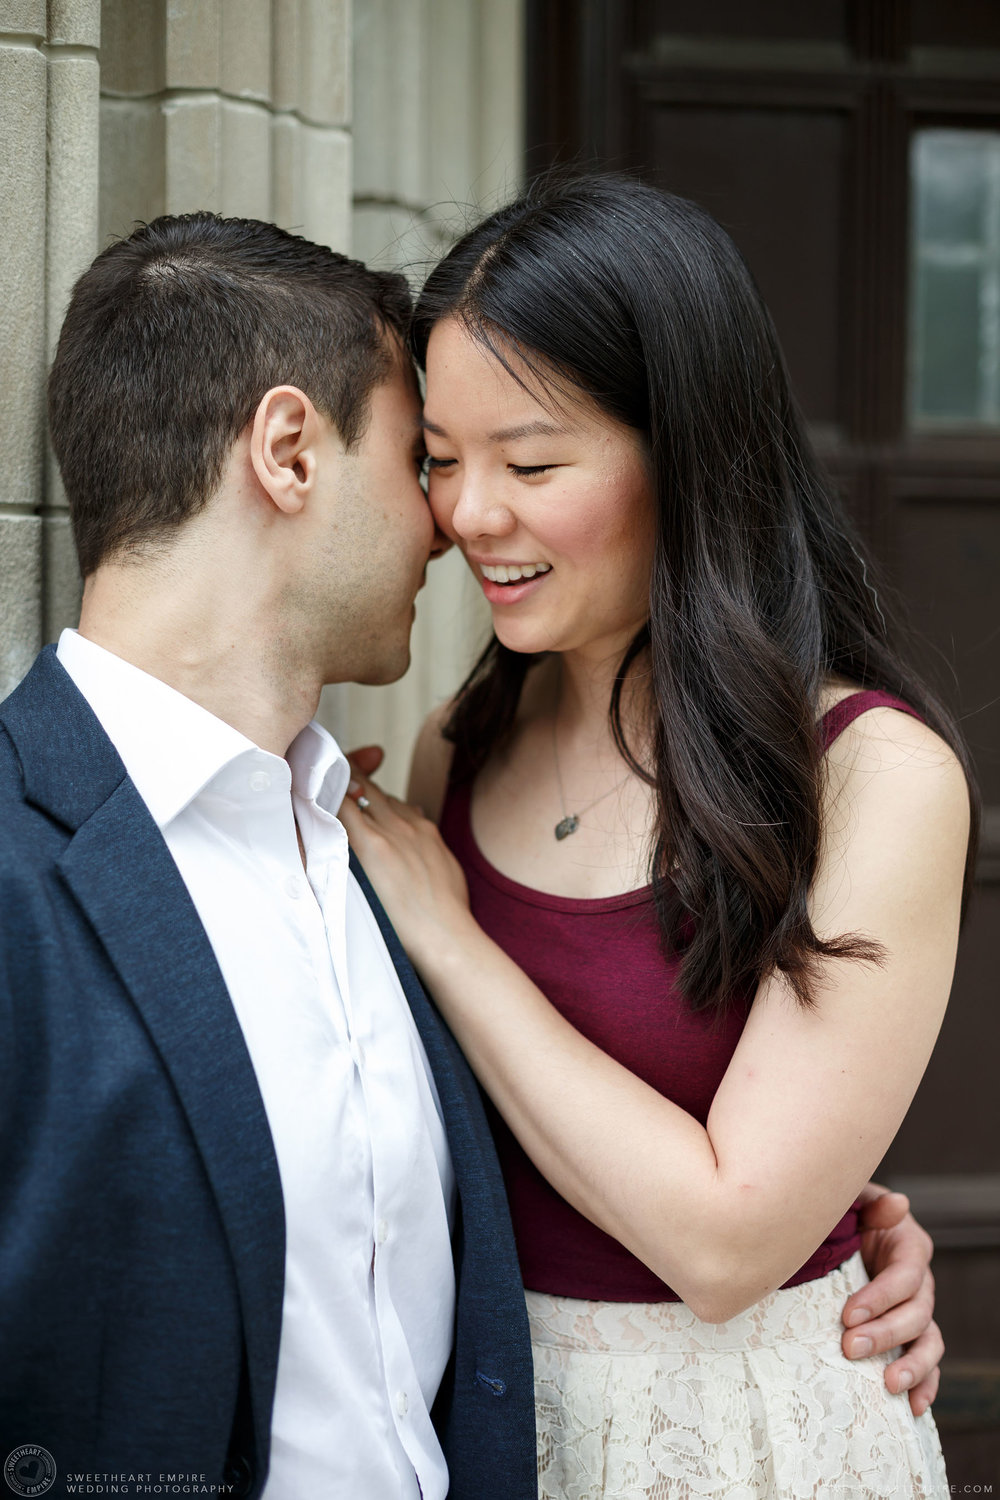 Couple sharing a close moment, McMaster University Engagement Session